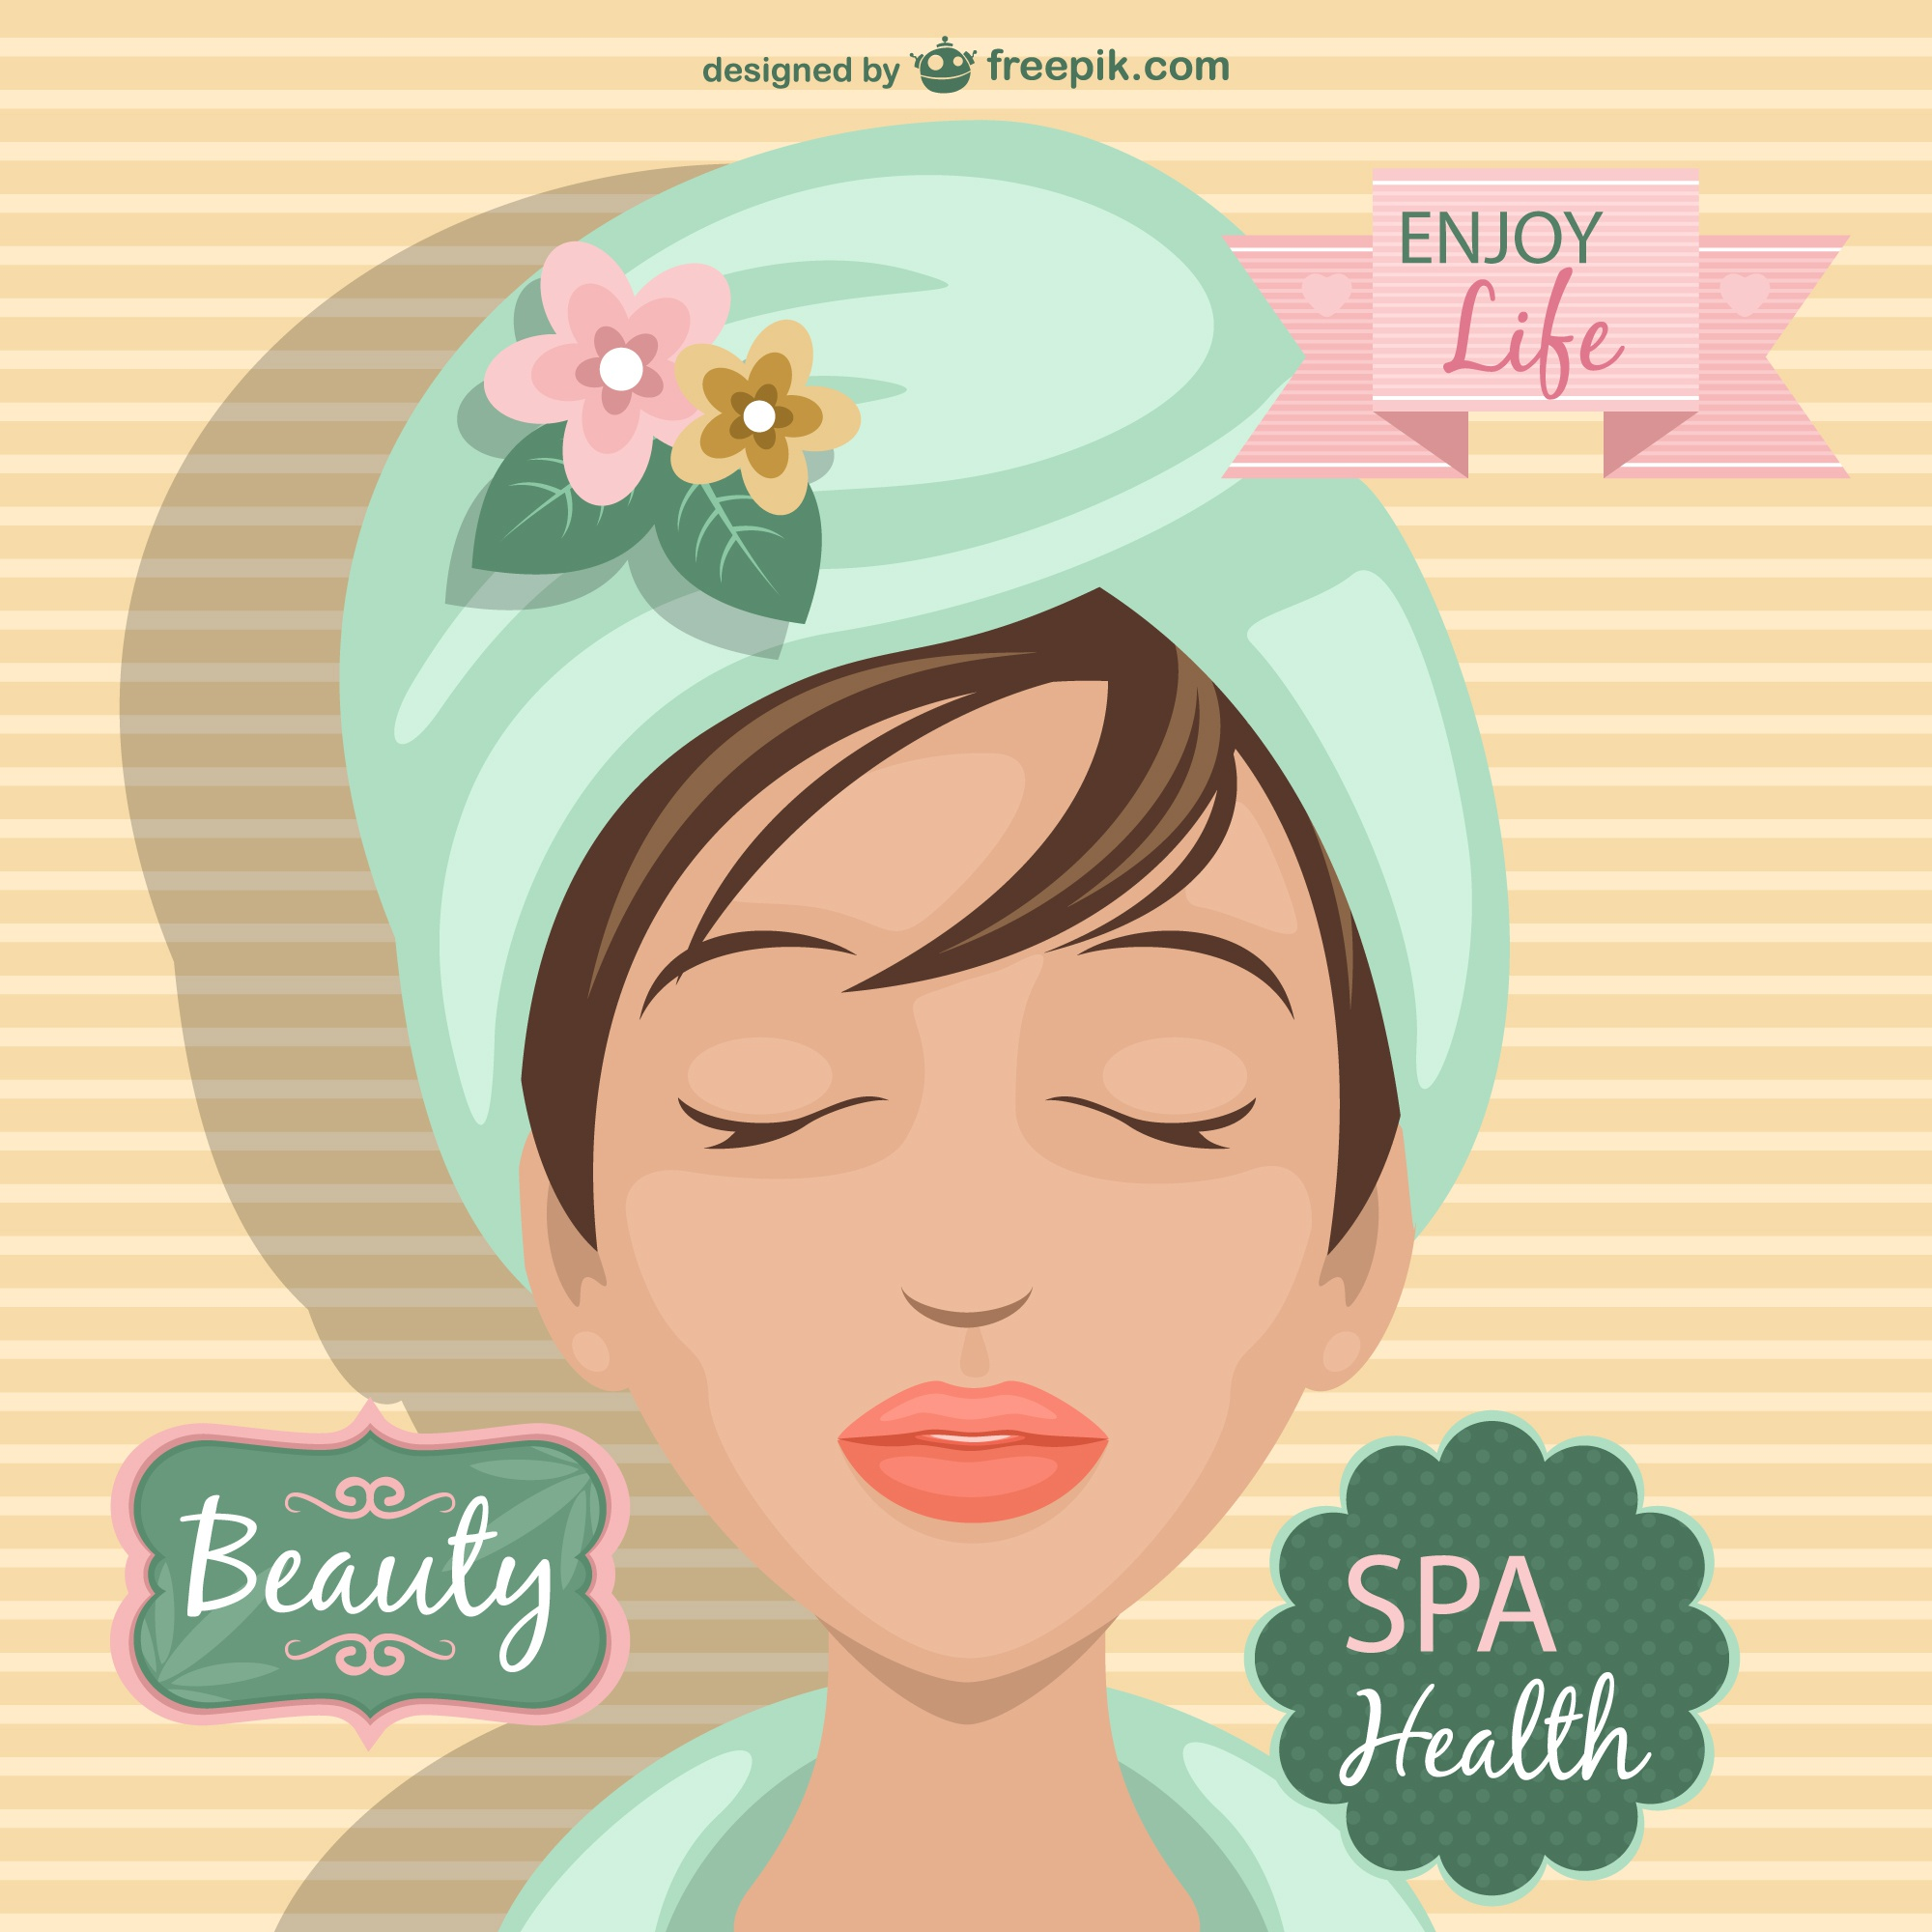 Spa treatment vector